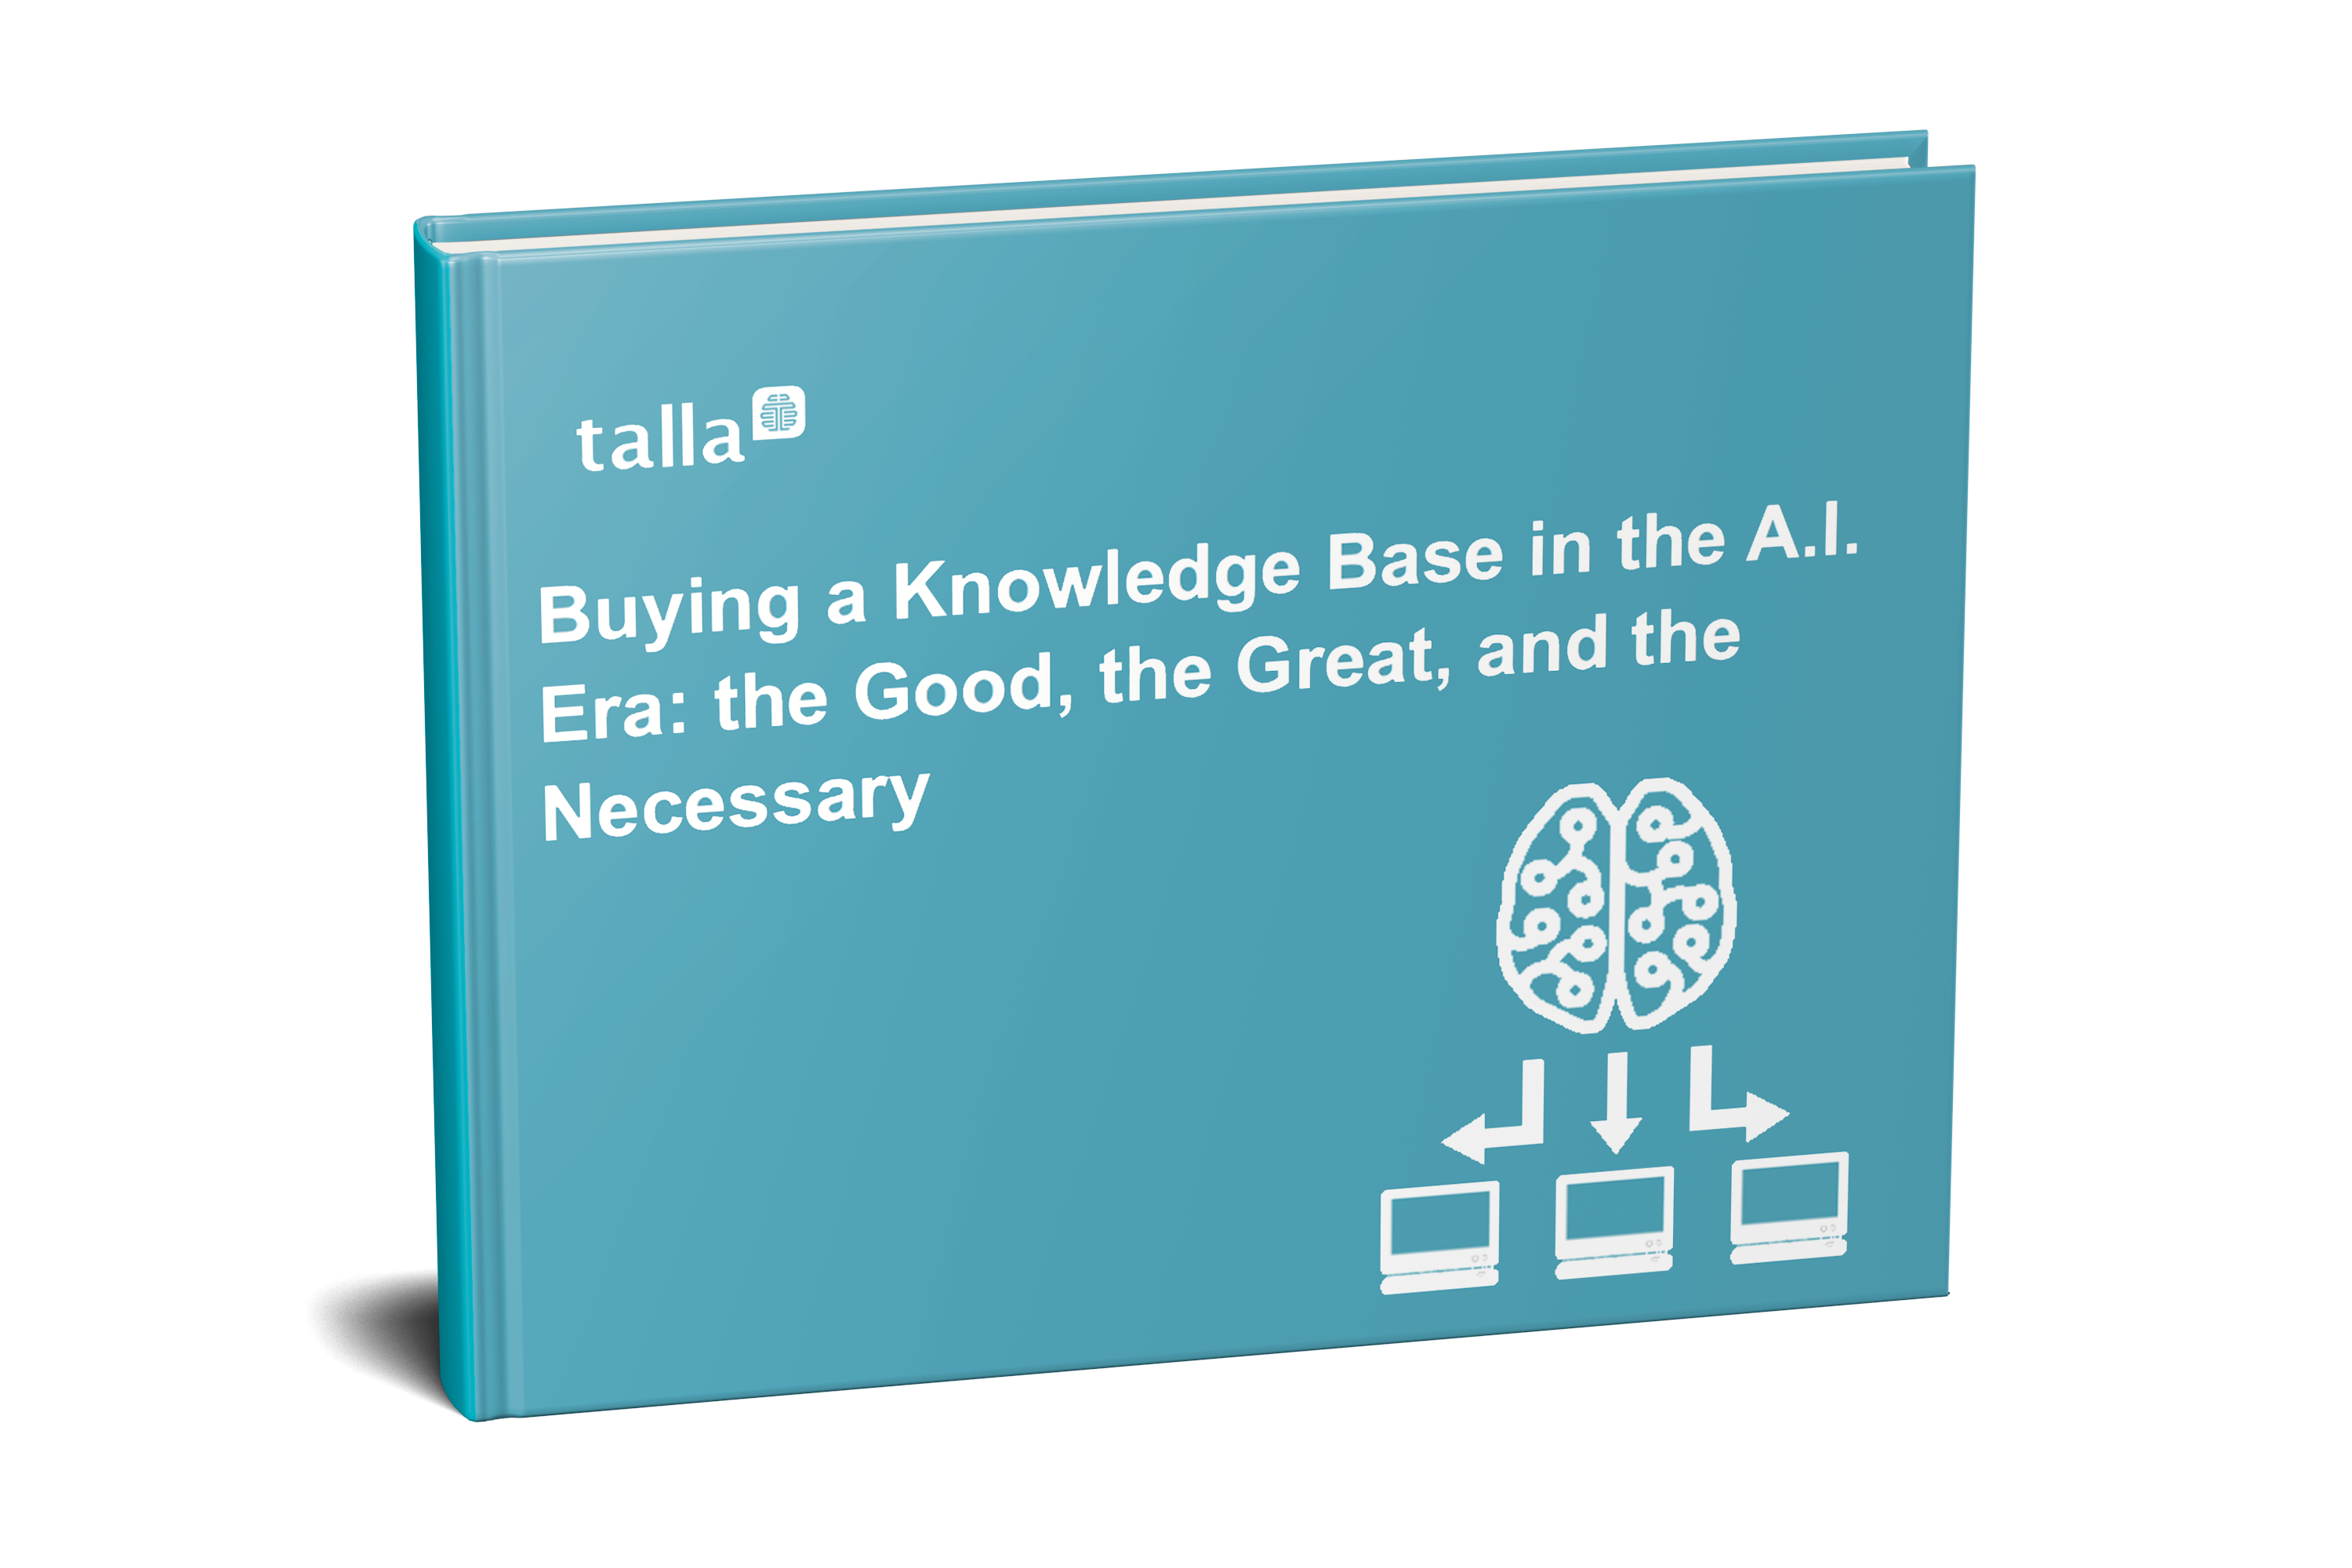 Buyer's guide to knowledge base in ai era